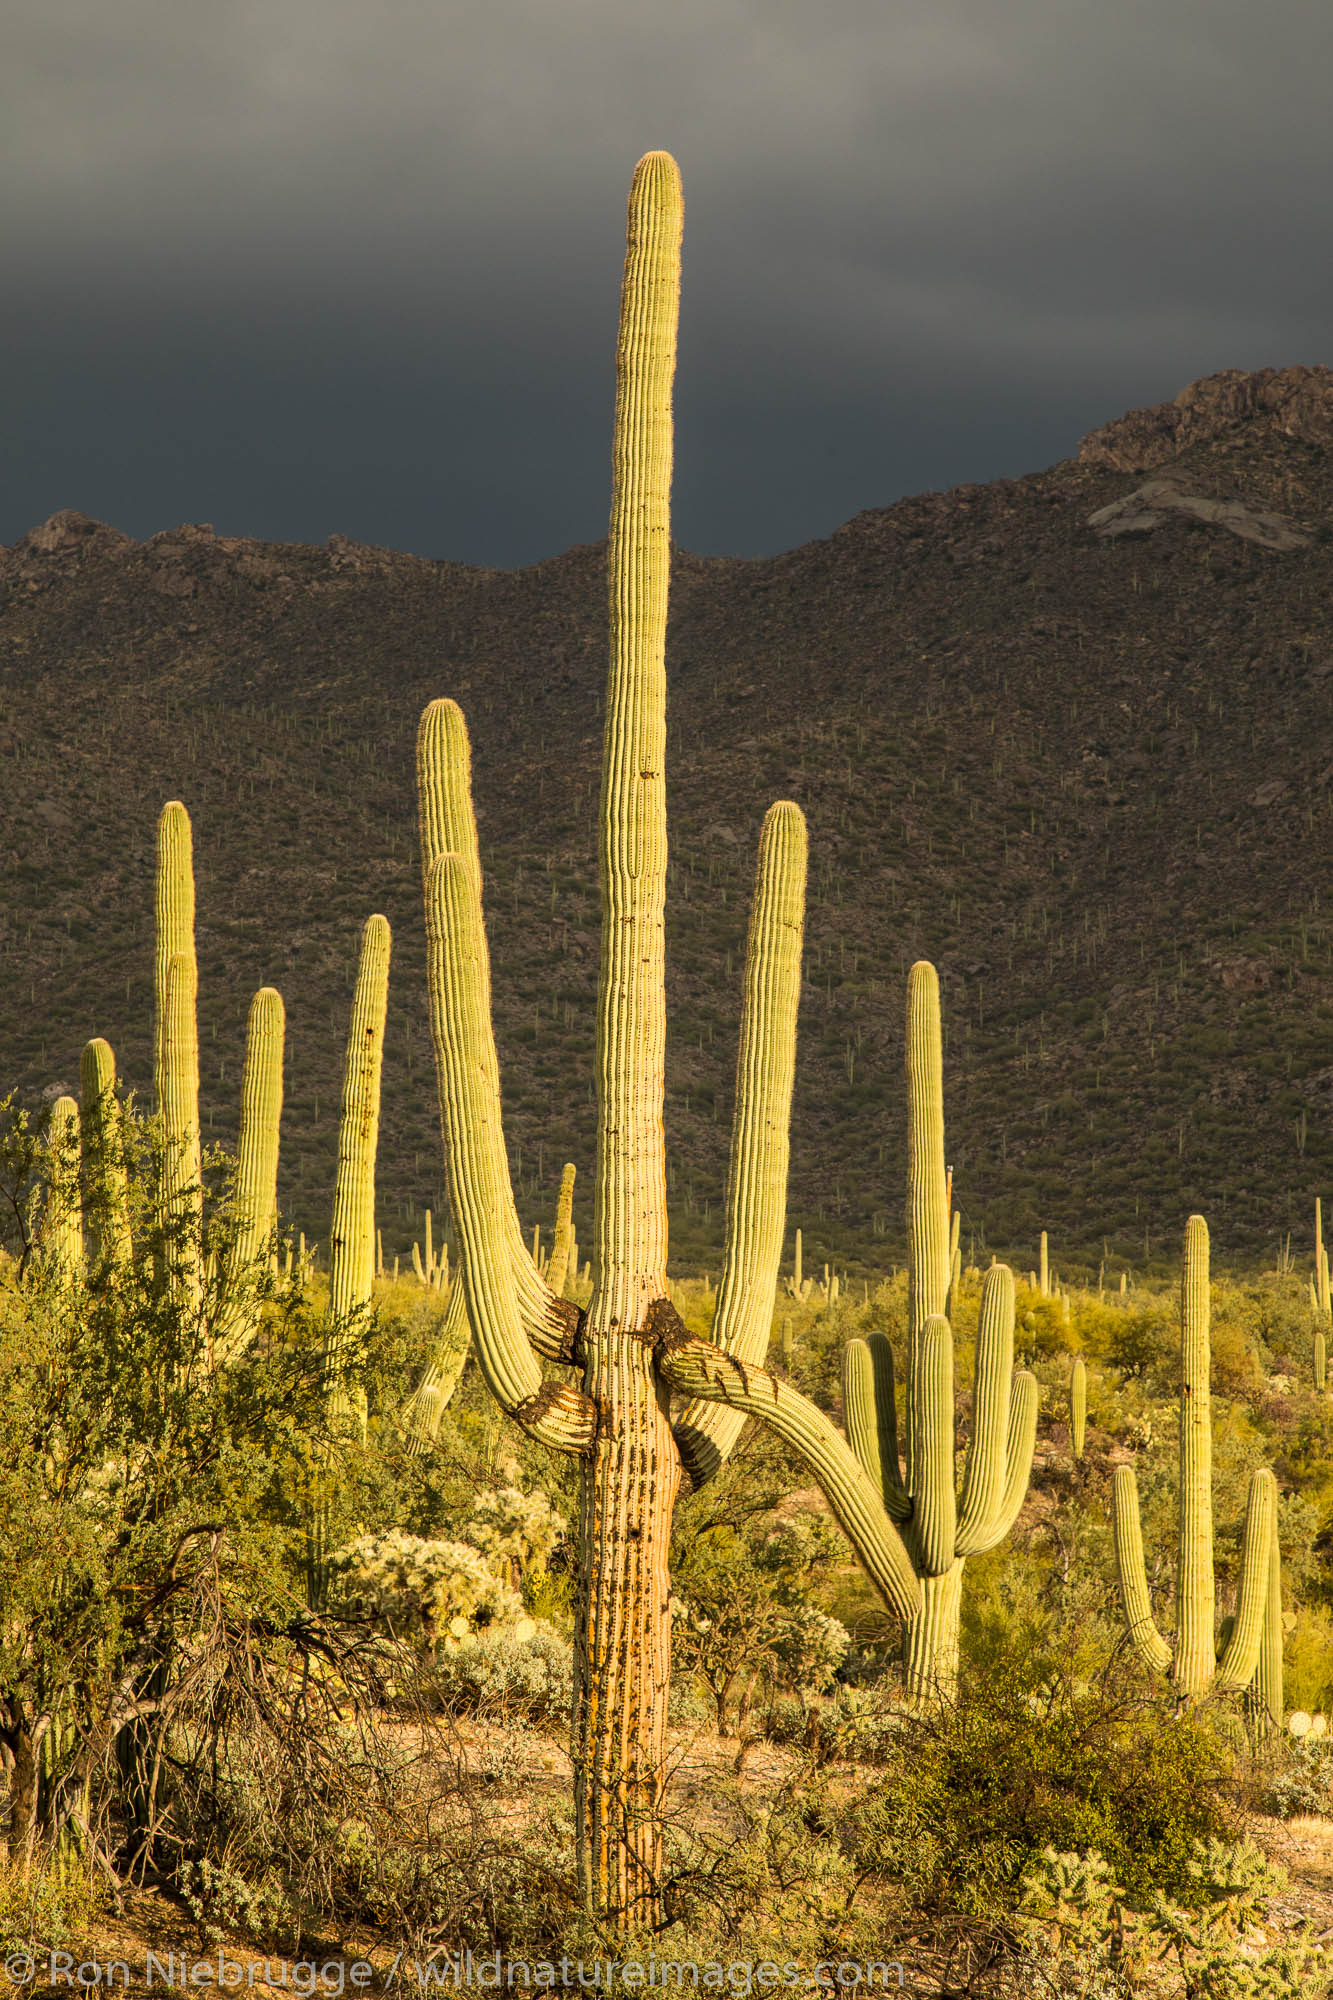 Saguaro cactus against stormy sky.  Arizona.